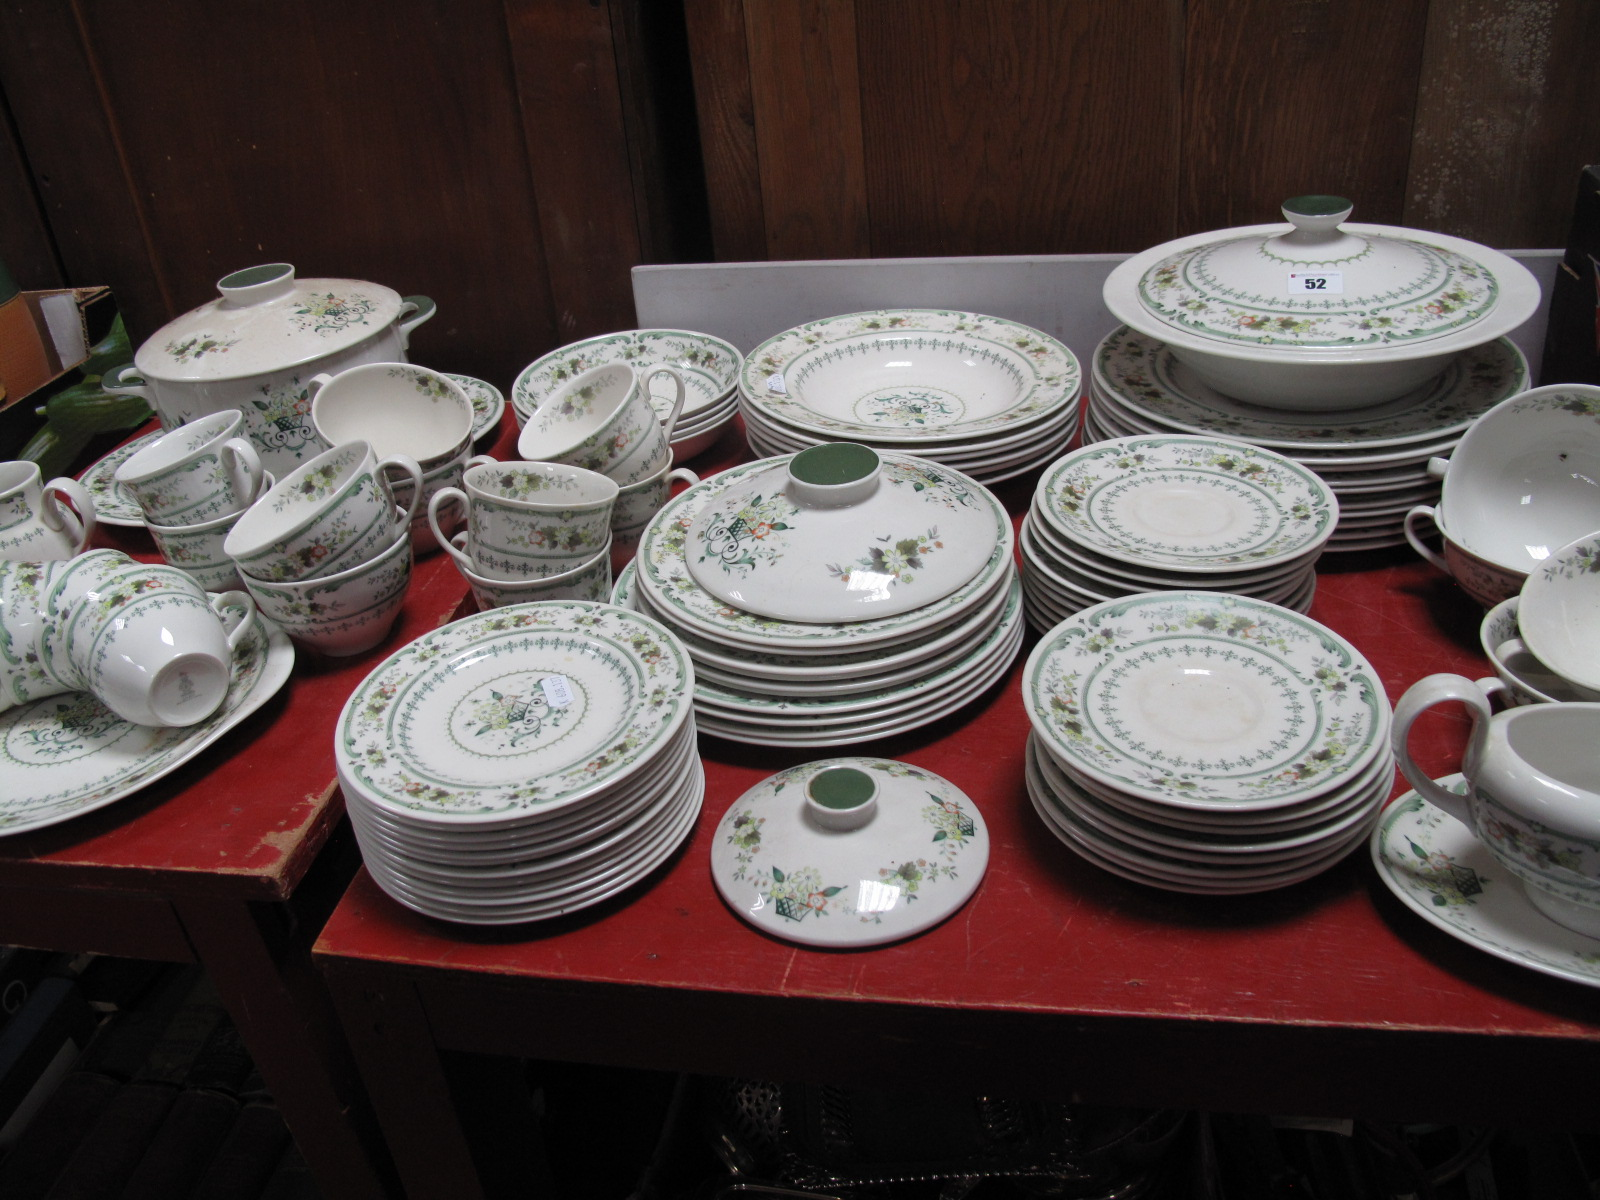 Lot 52 - A Matched Royal Doulton 'Provencal' Part Tea and Dinner Service, of approximately eighty five